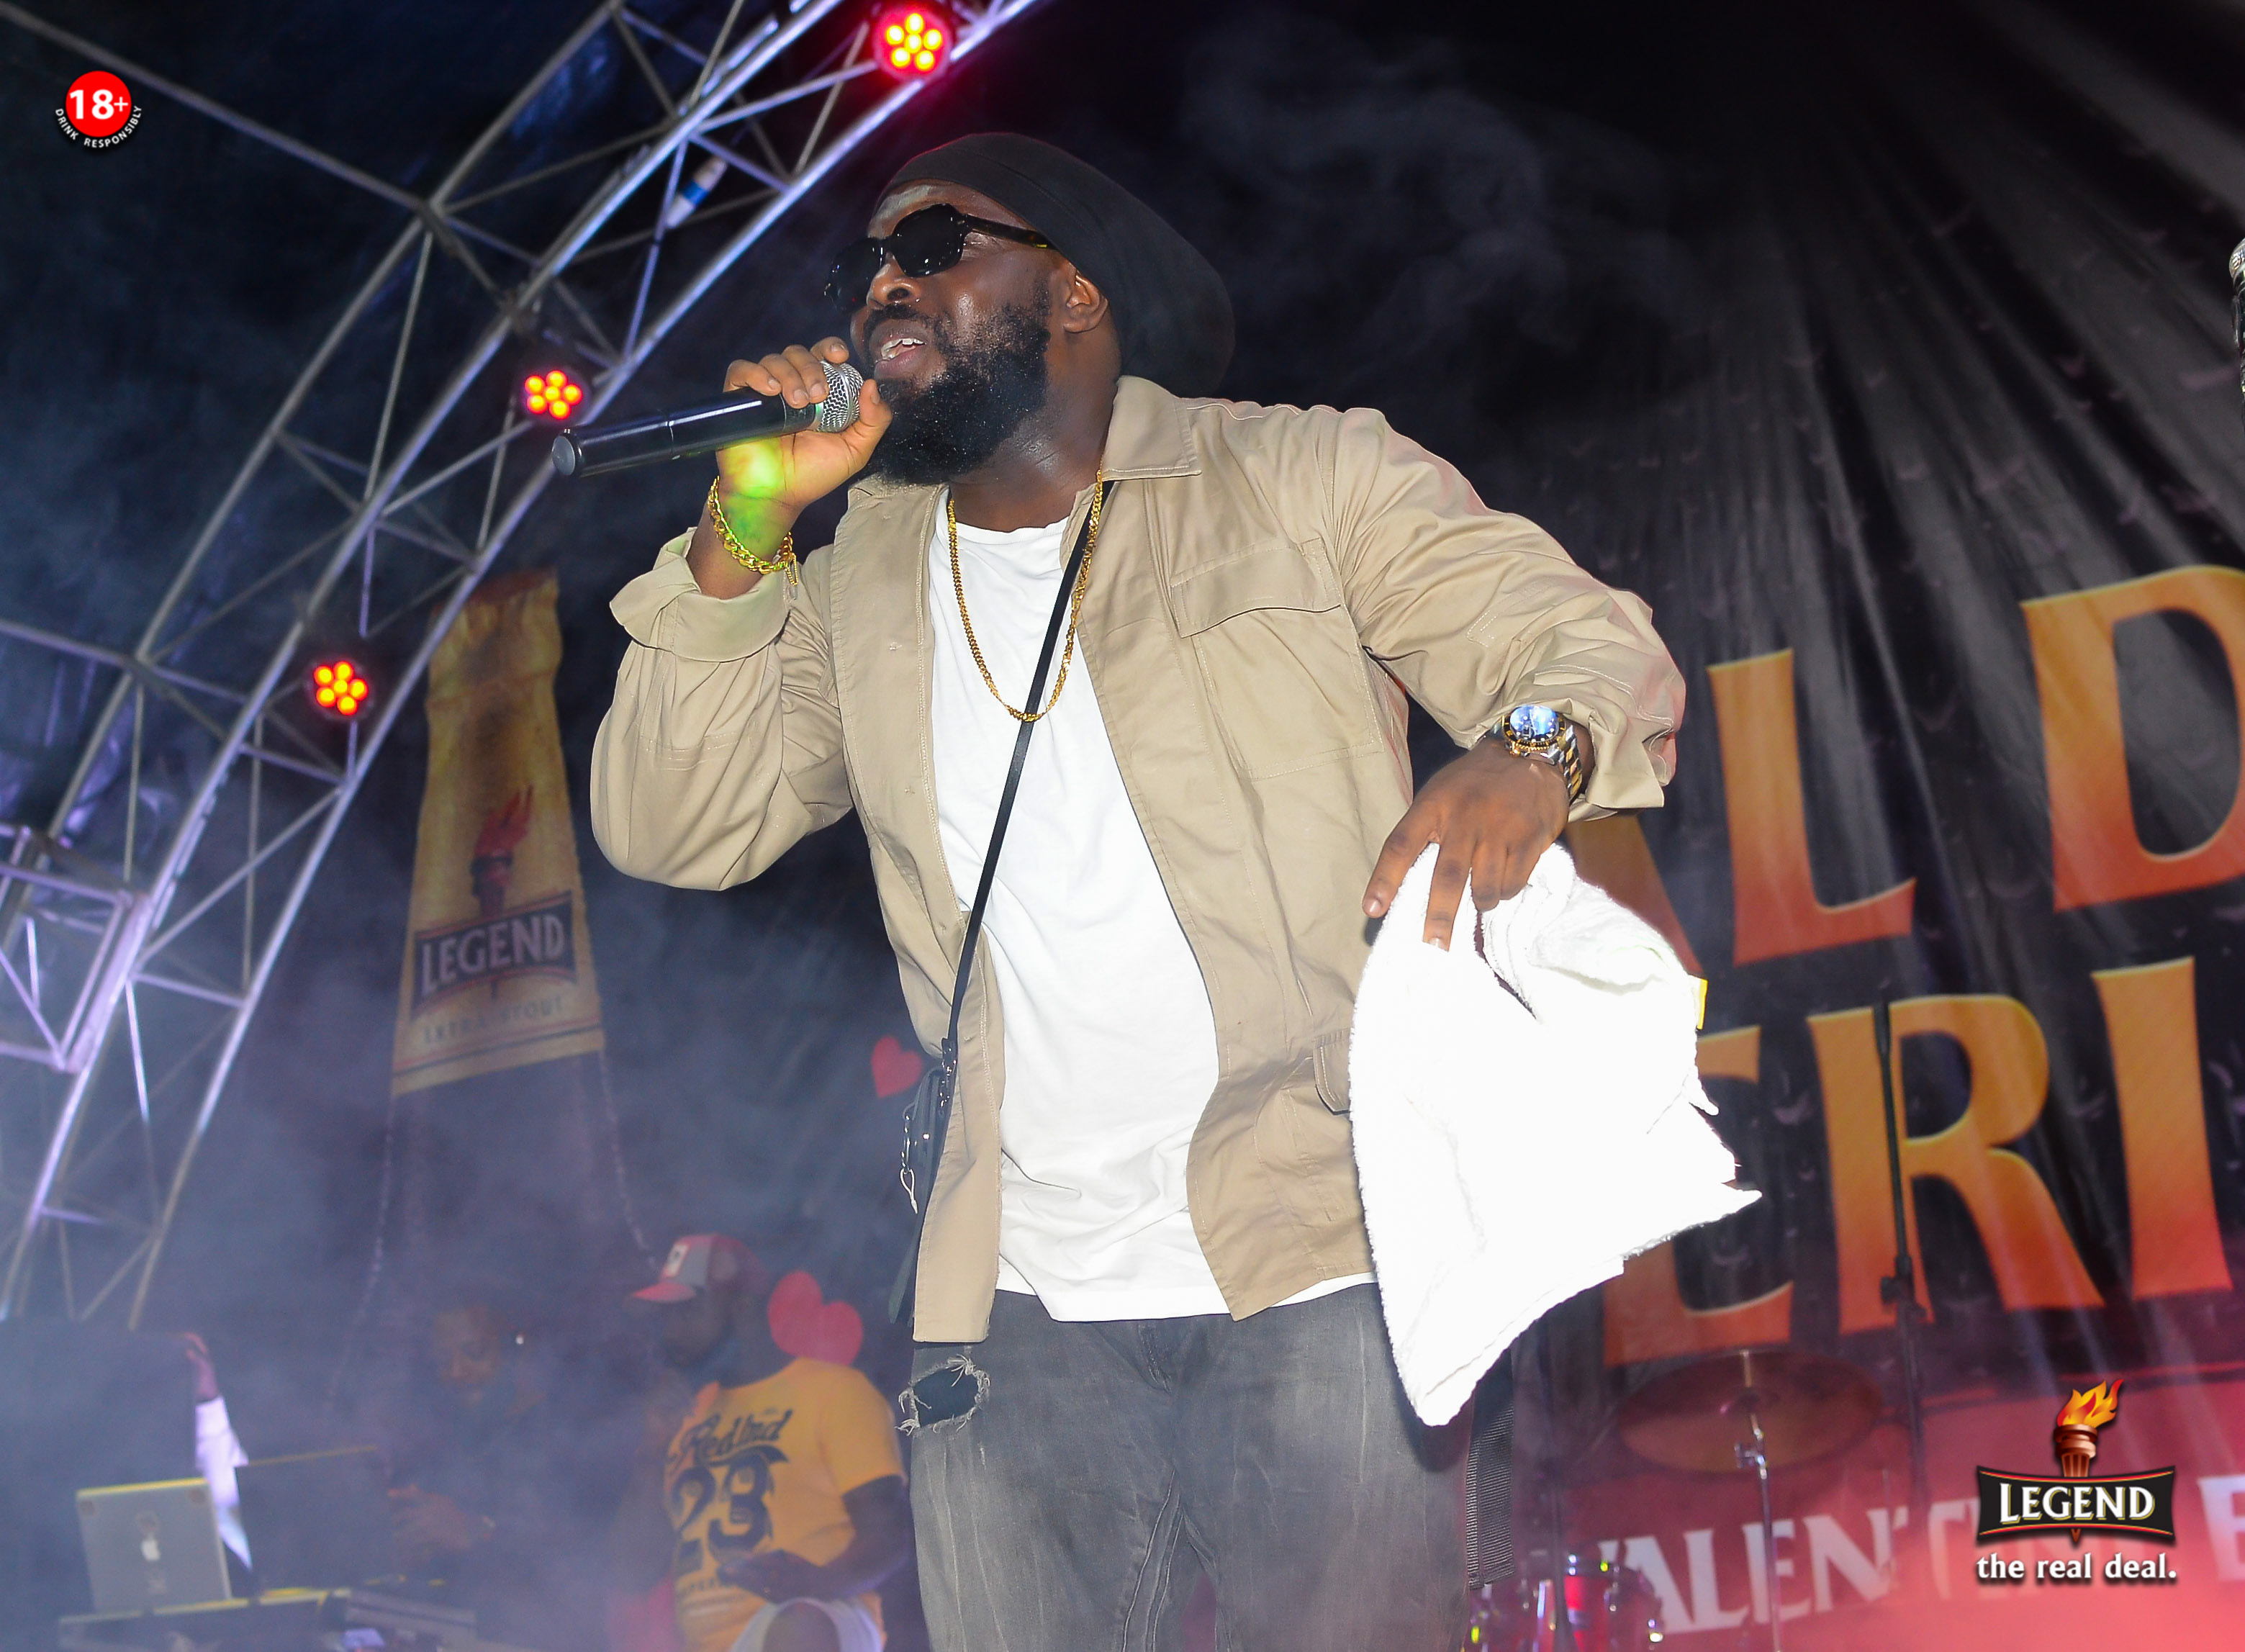 Timaya Thrills Fans At Legend's Real Deal Experience Concert In Enugu